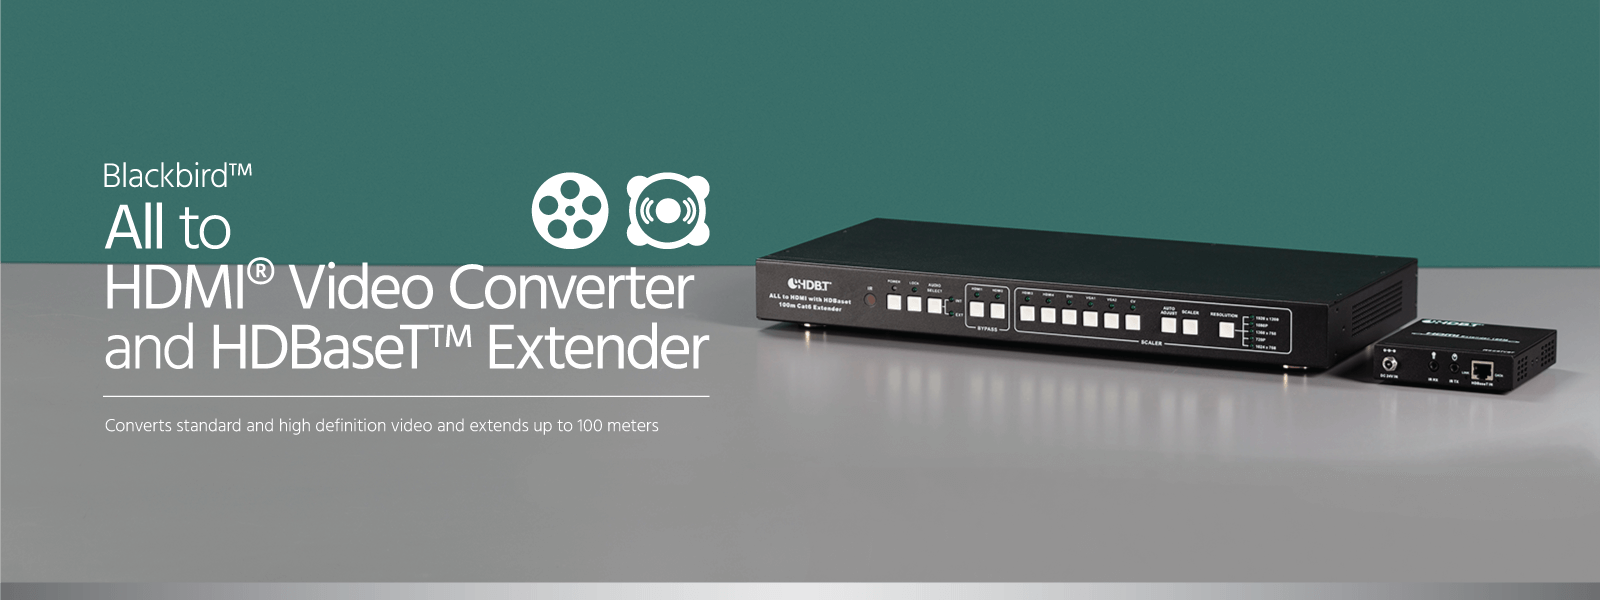 All to HDMI Video Converter and HDBaseT Extender